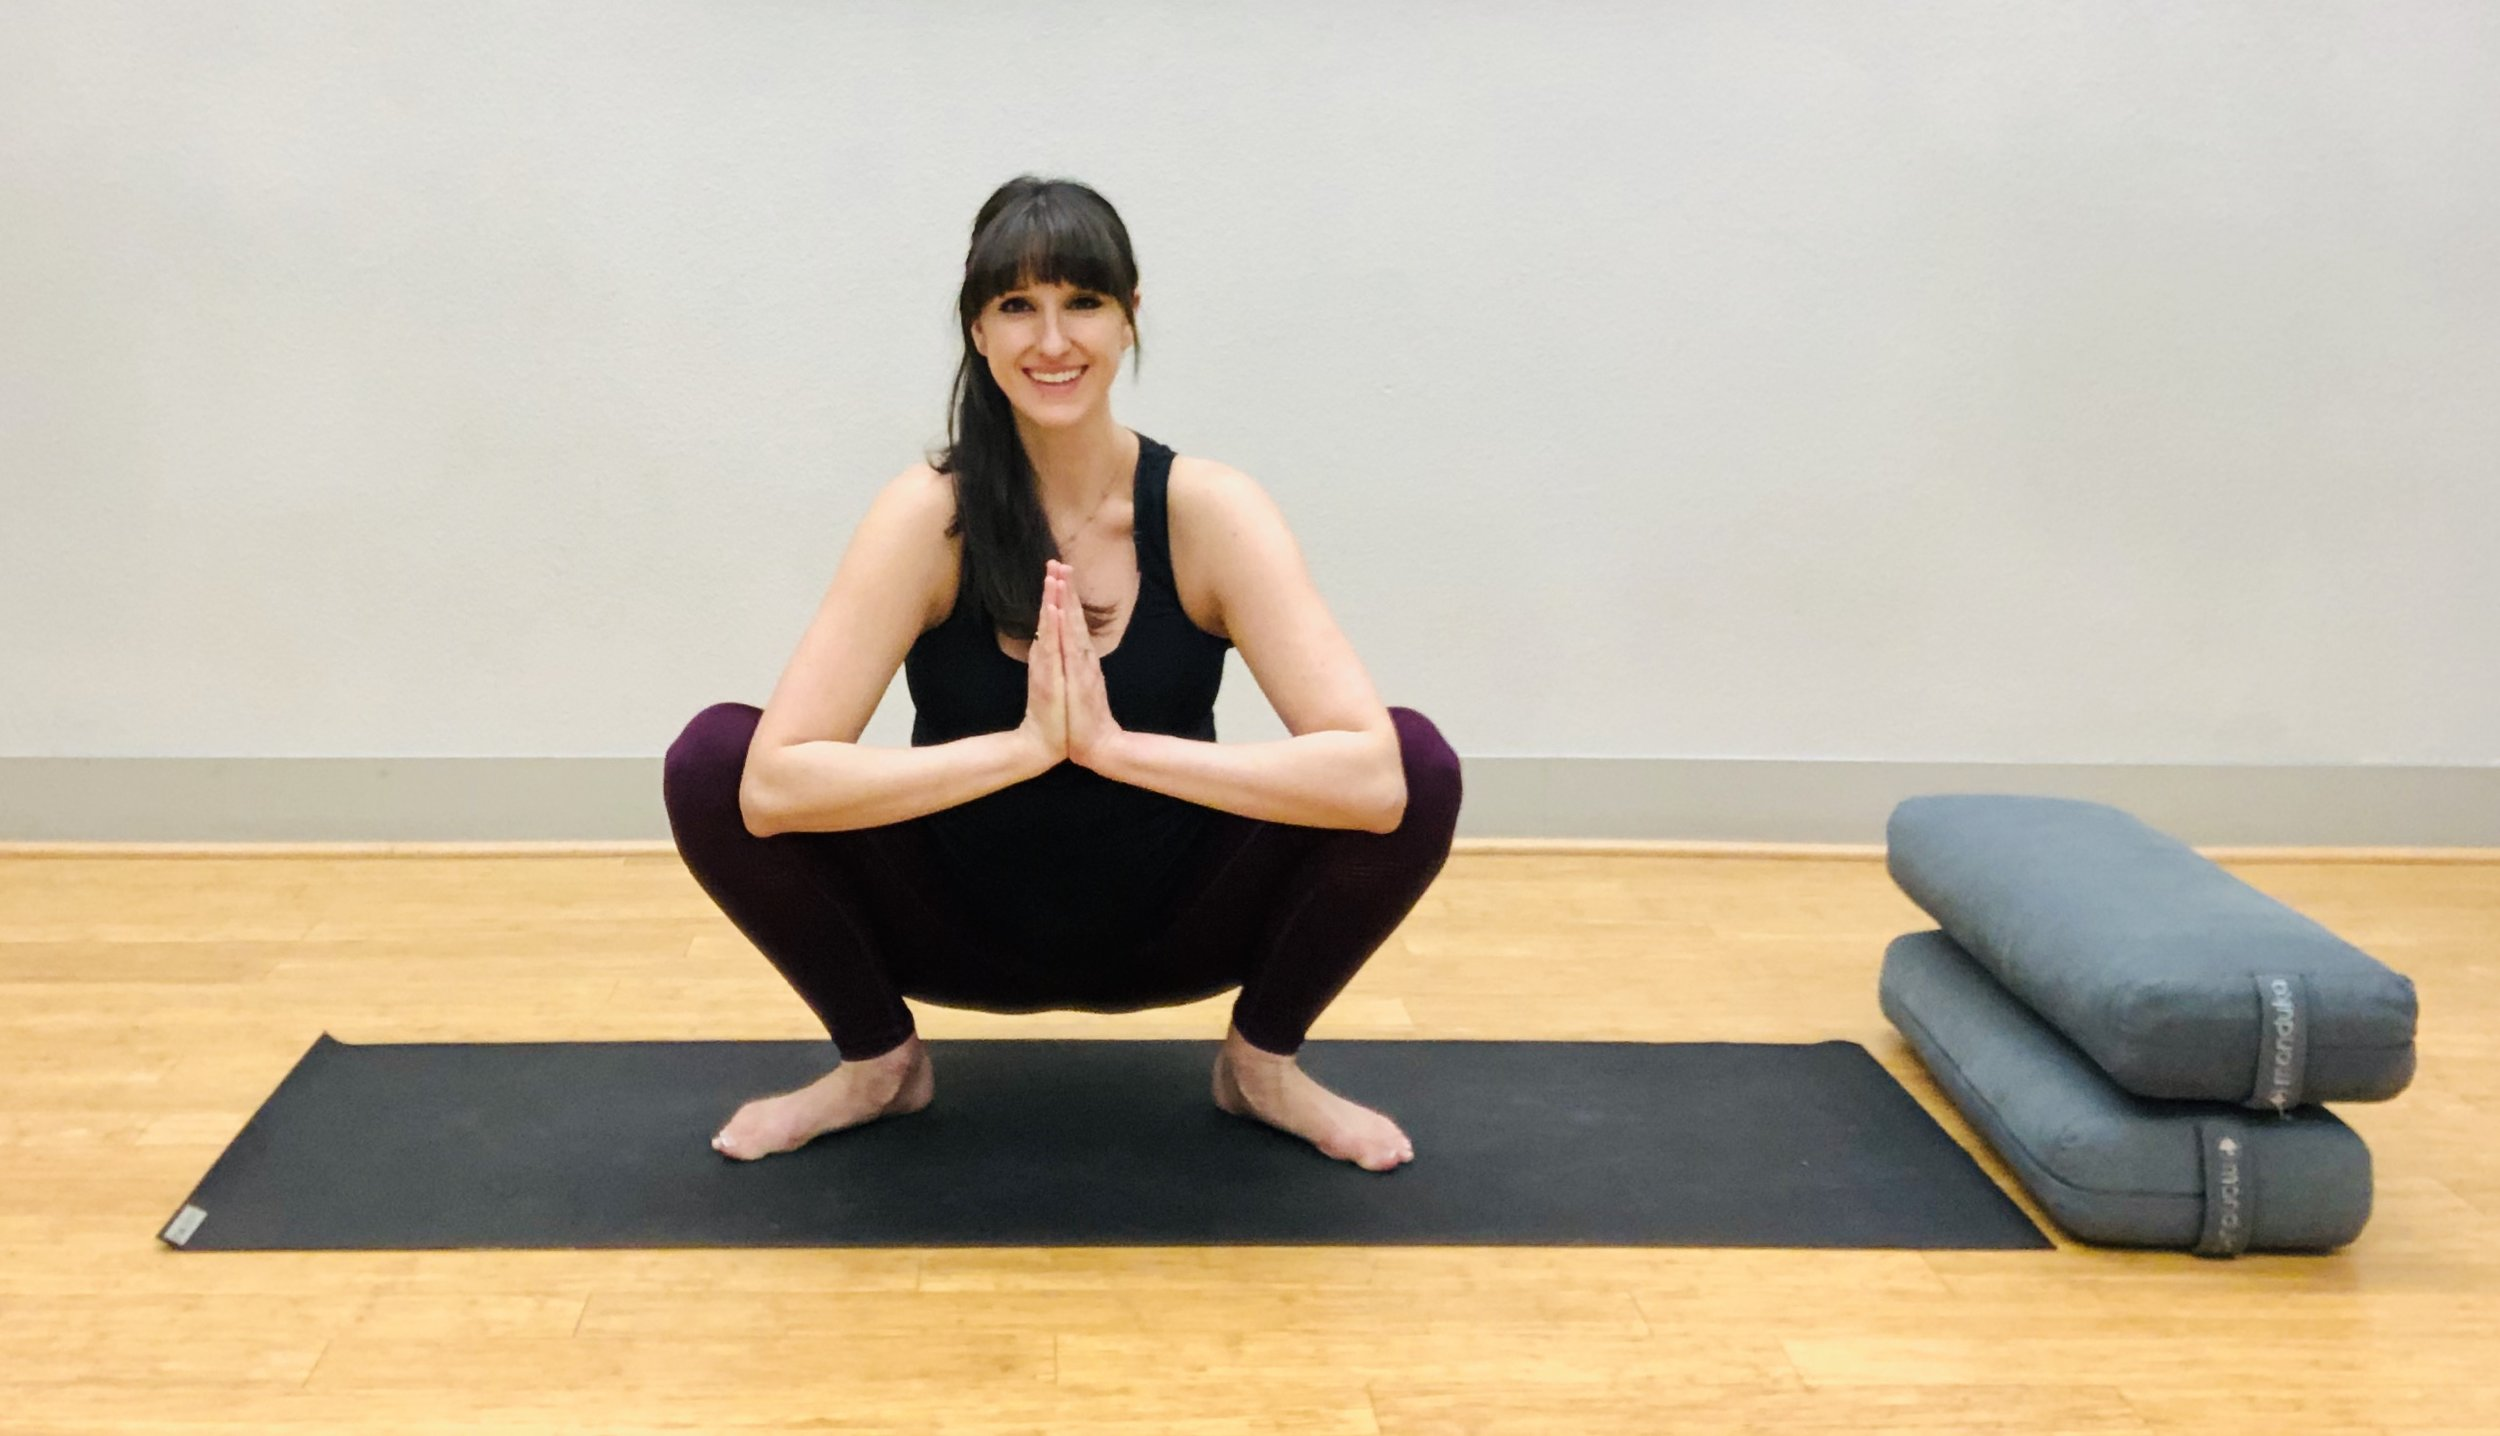 Squat again to come to floor. Other options include sitting on a ball, bolster or pillow. Heels may be lifted, but aim to keep feet wide and flat on the floor. See video for partner-assisted variations!